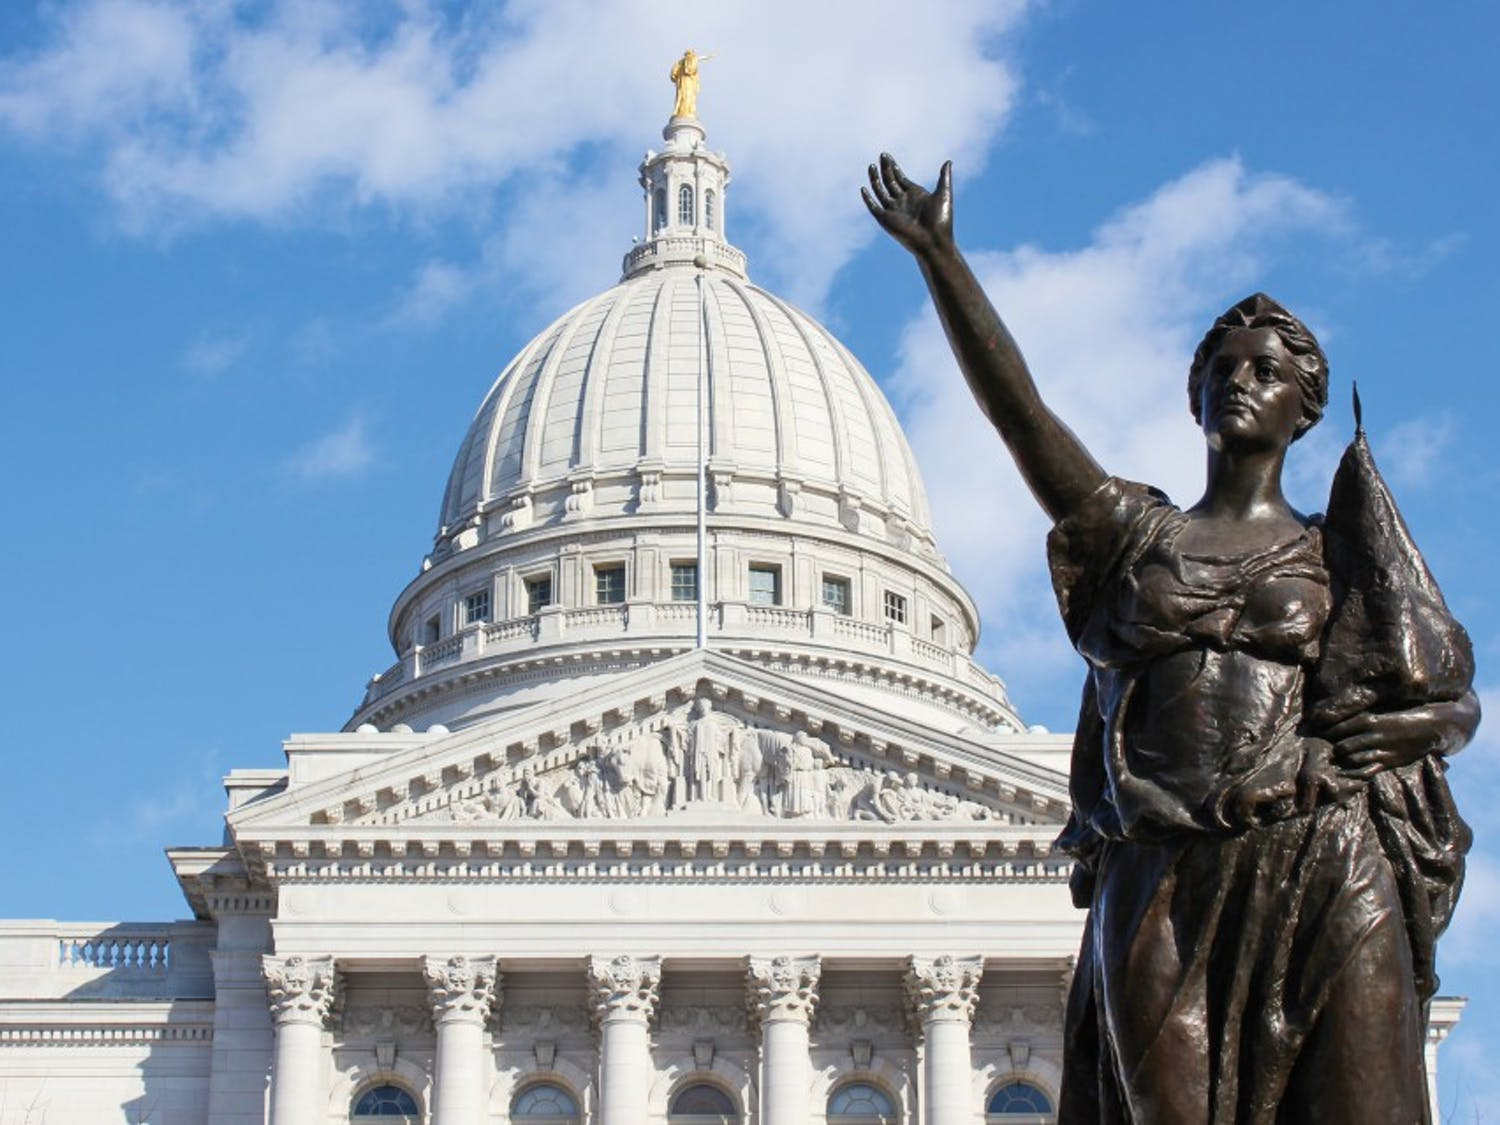 Wisconsin has become a more conservative state under Gov. Scott Walker's administration. Whether or not the state's progressive past is seen in society and government today is up for debate.